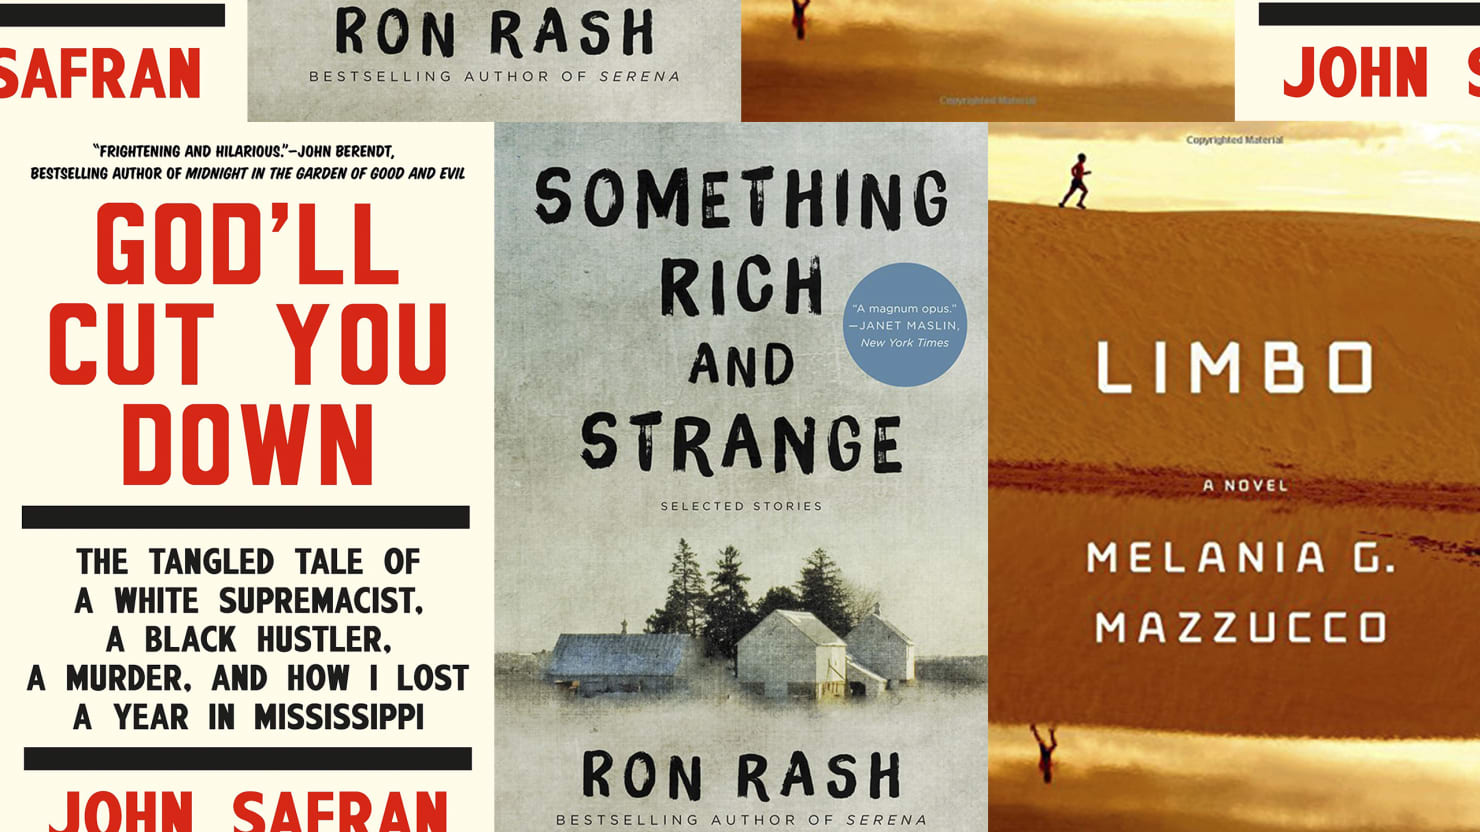 This Week's Hot Reads: December 22, 2014